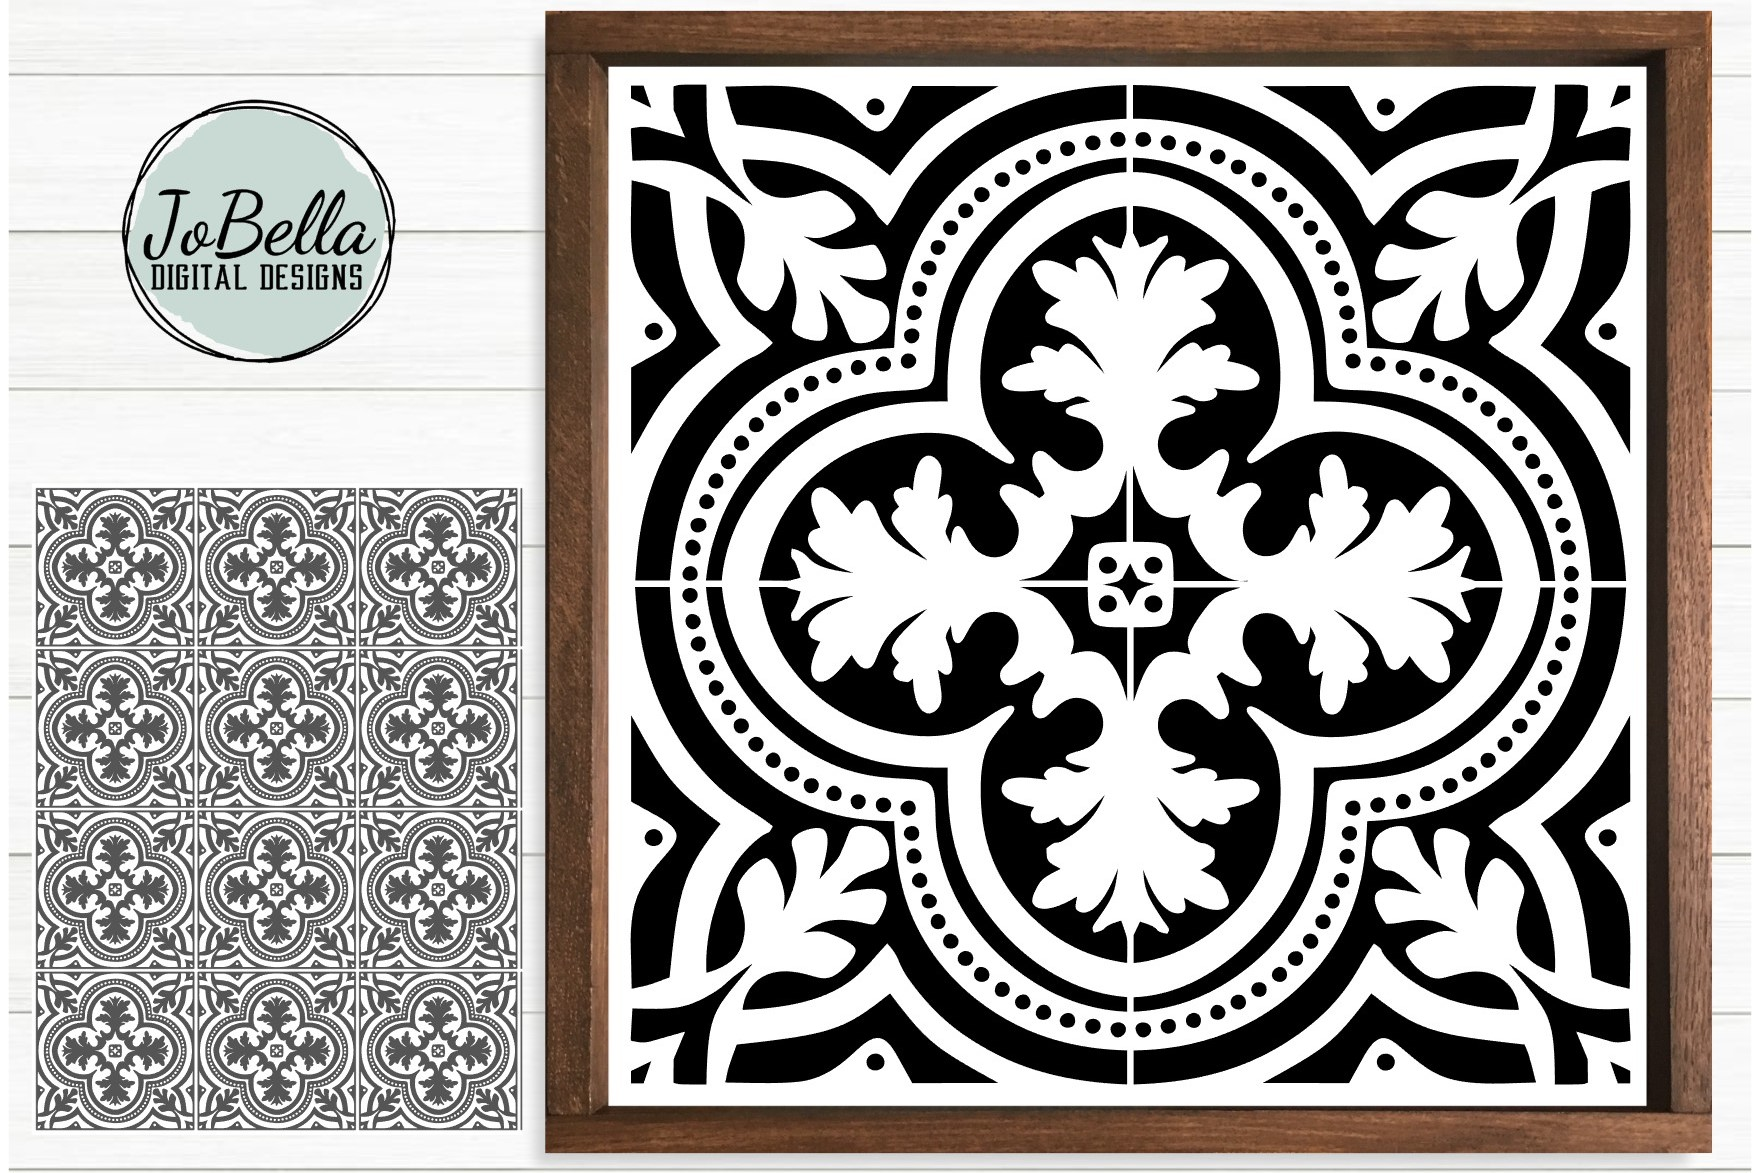 Download Free Digital Tile Sublimation Print Graphic By Jobella Digital for Cricut Explore, Silhouette and other cutting machines.